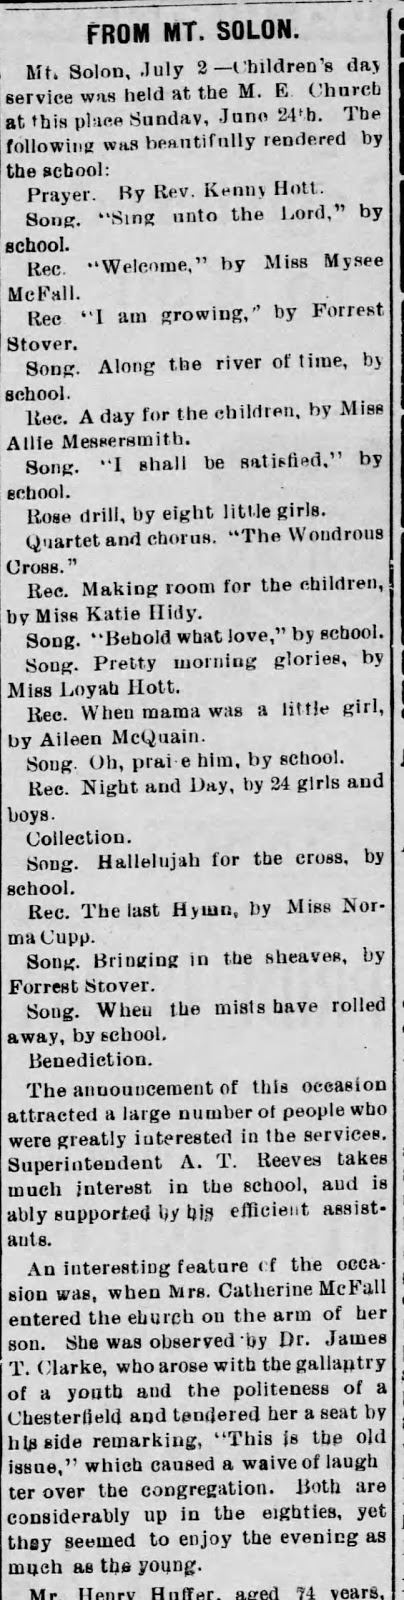 July 6, 1906 Staunton Spectator, From Mt. Solon